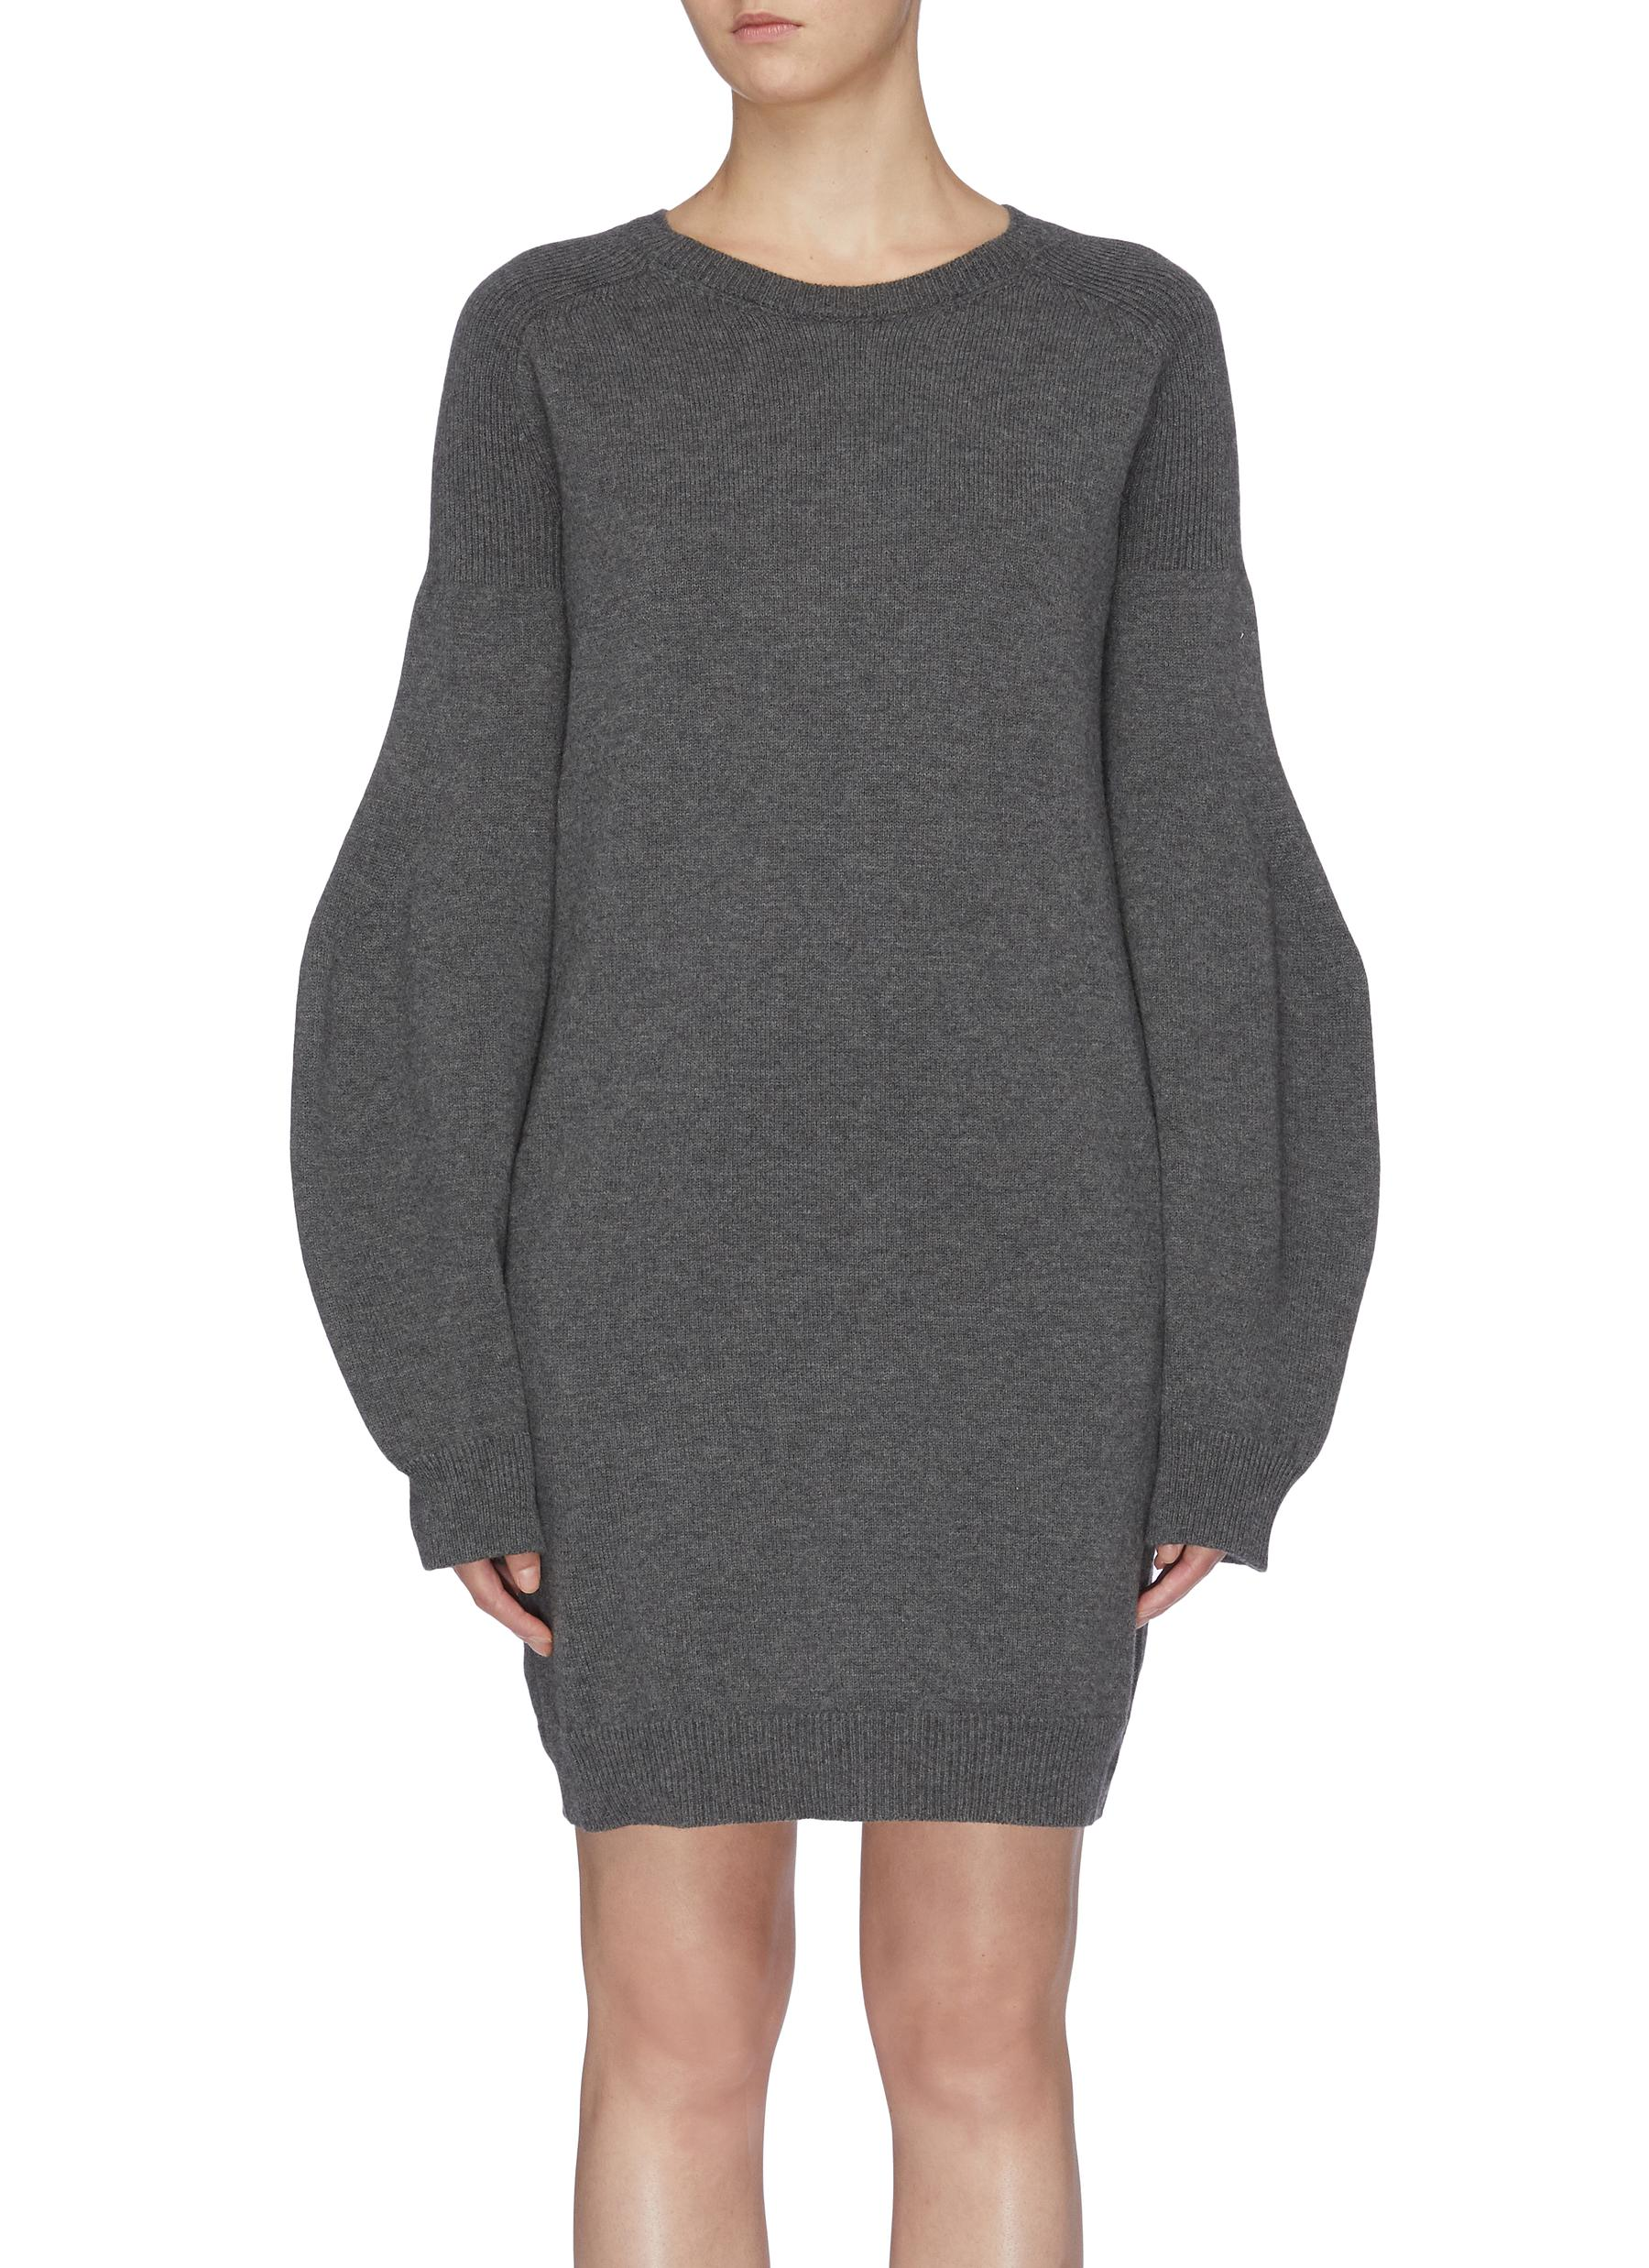 Soft Simple balloon sleeve dress by Stella Mccartney